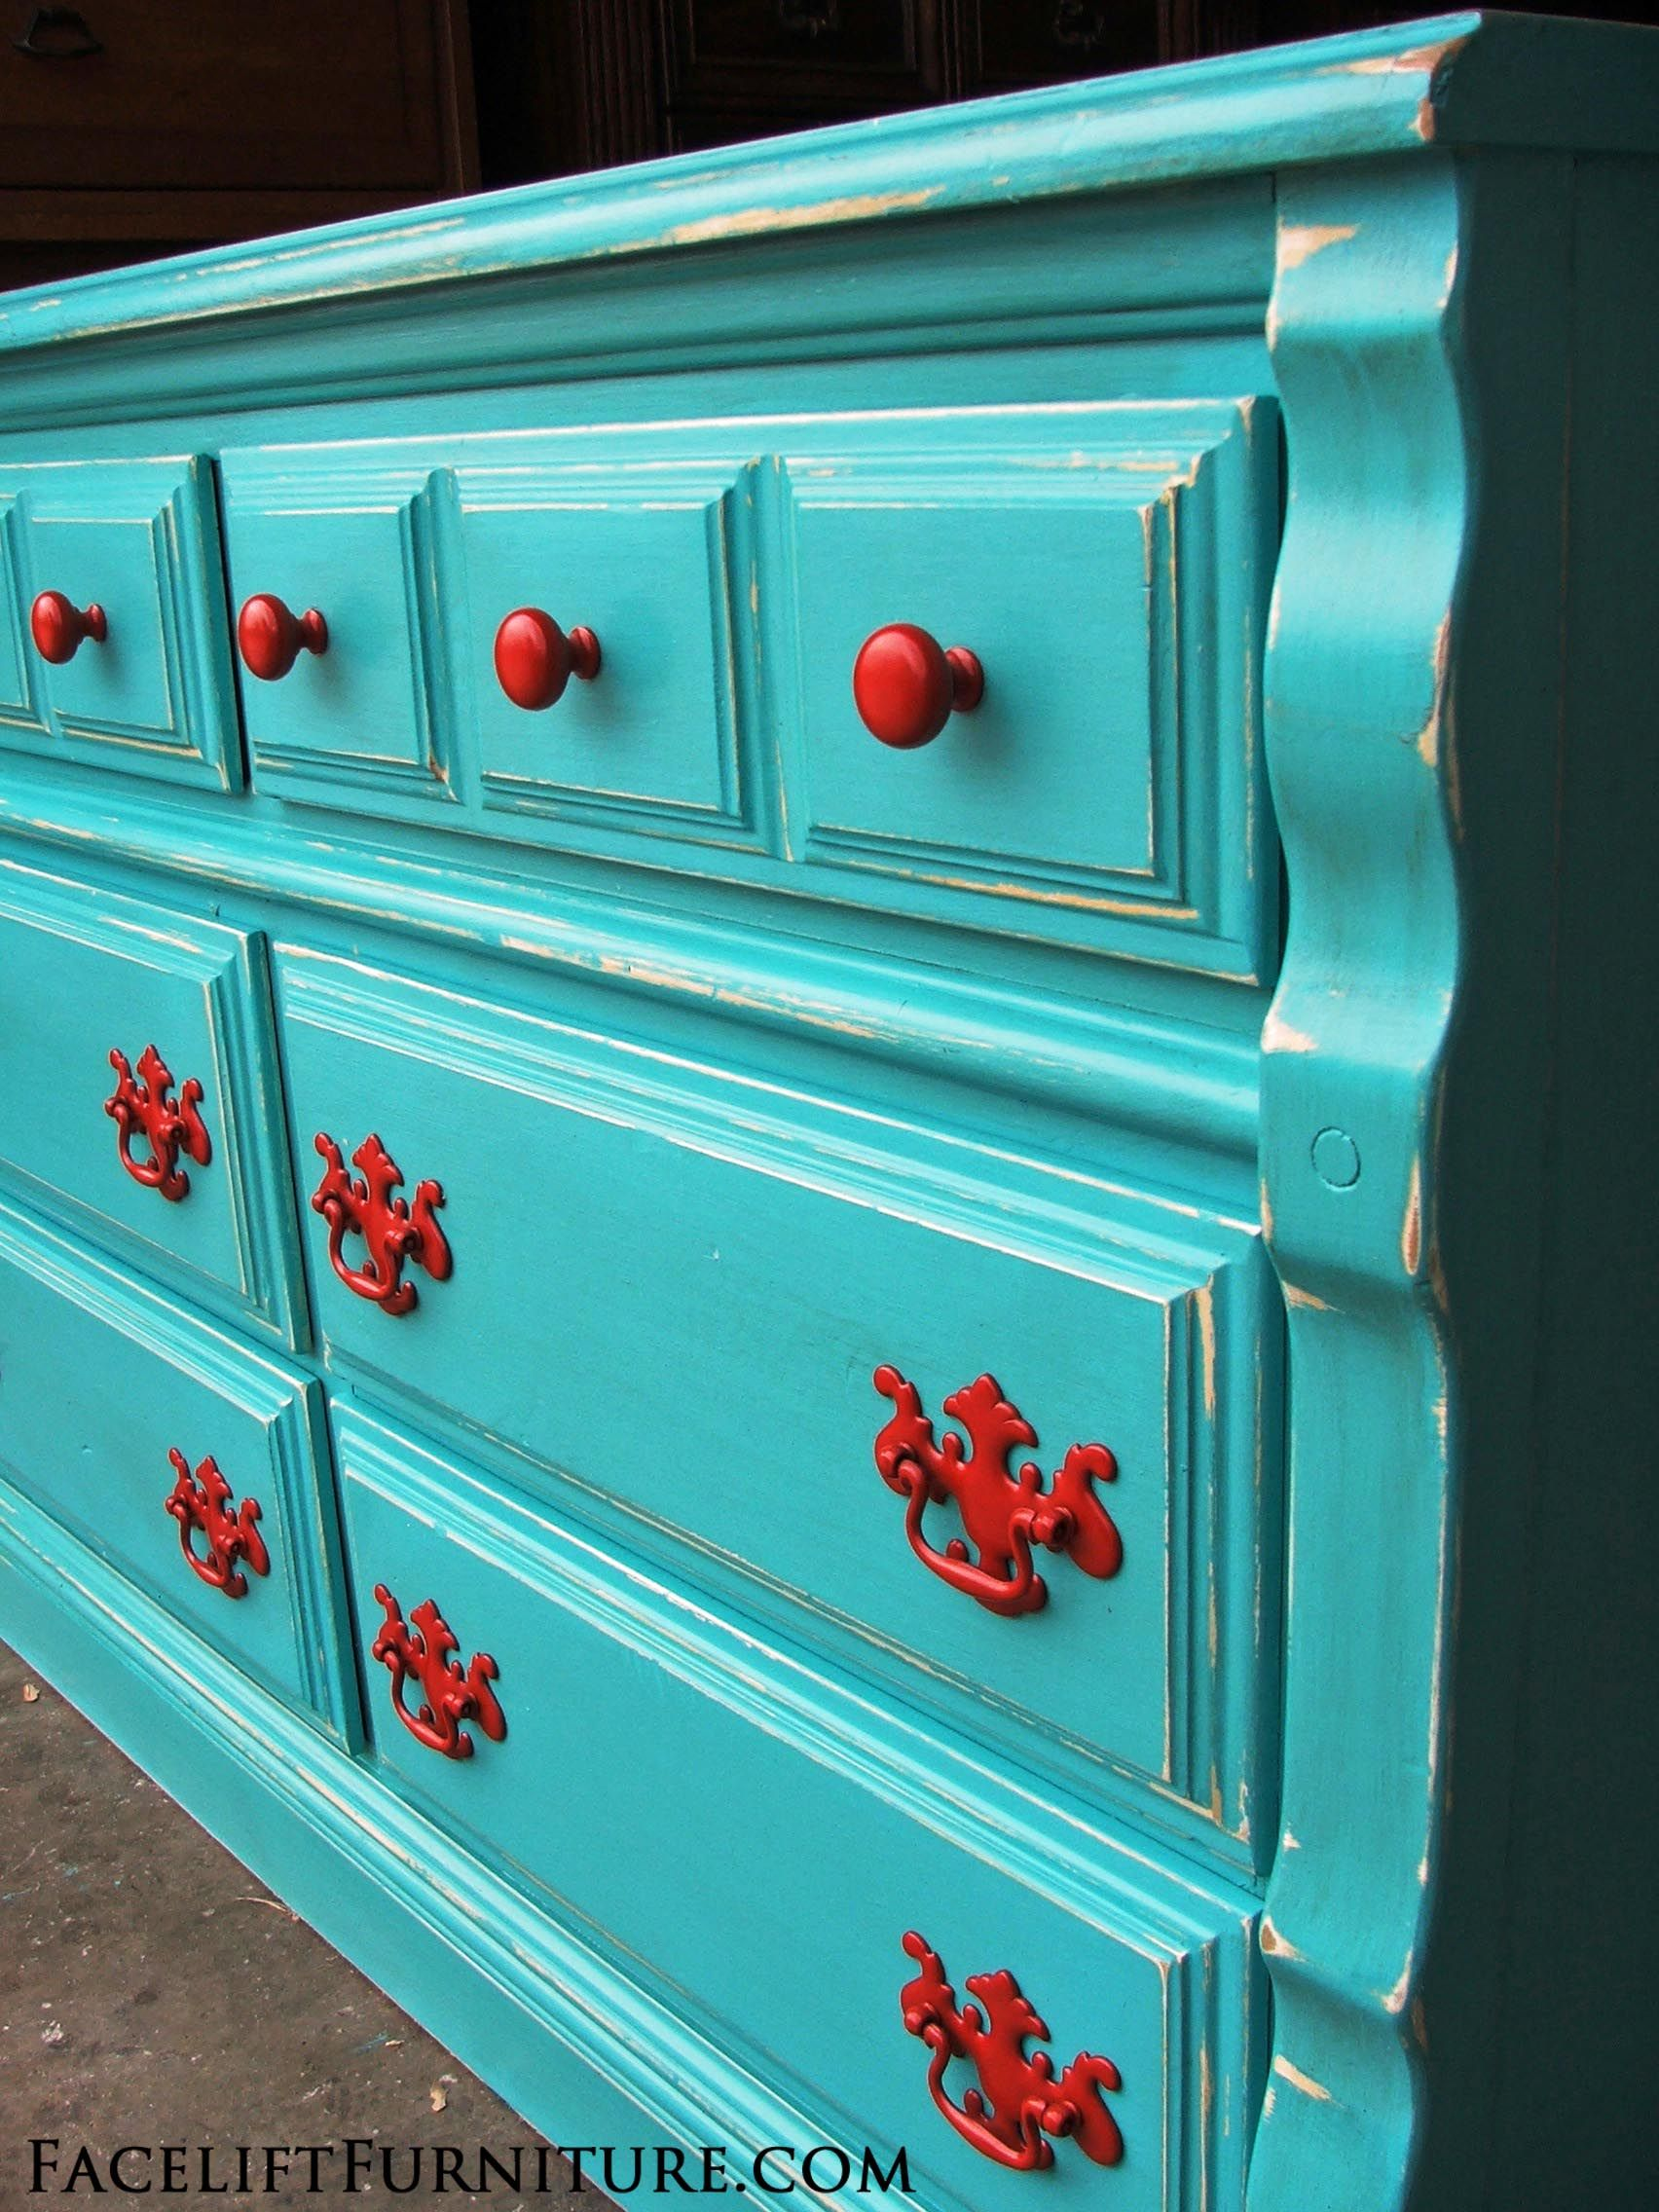 Paint colors for distressed furniture - Distressed Turquoise Dresser With Paprika Pulls